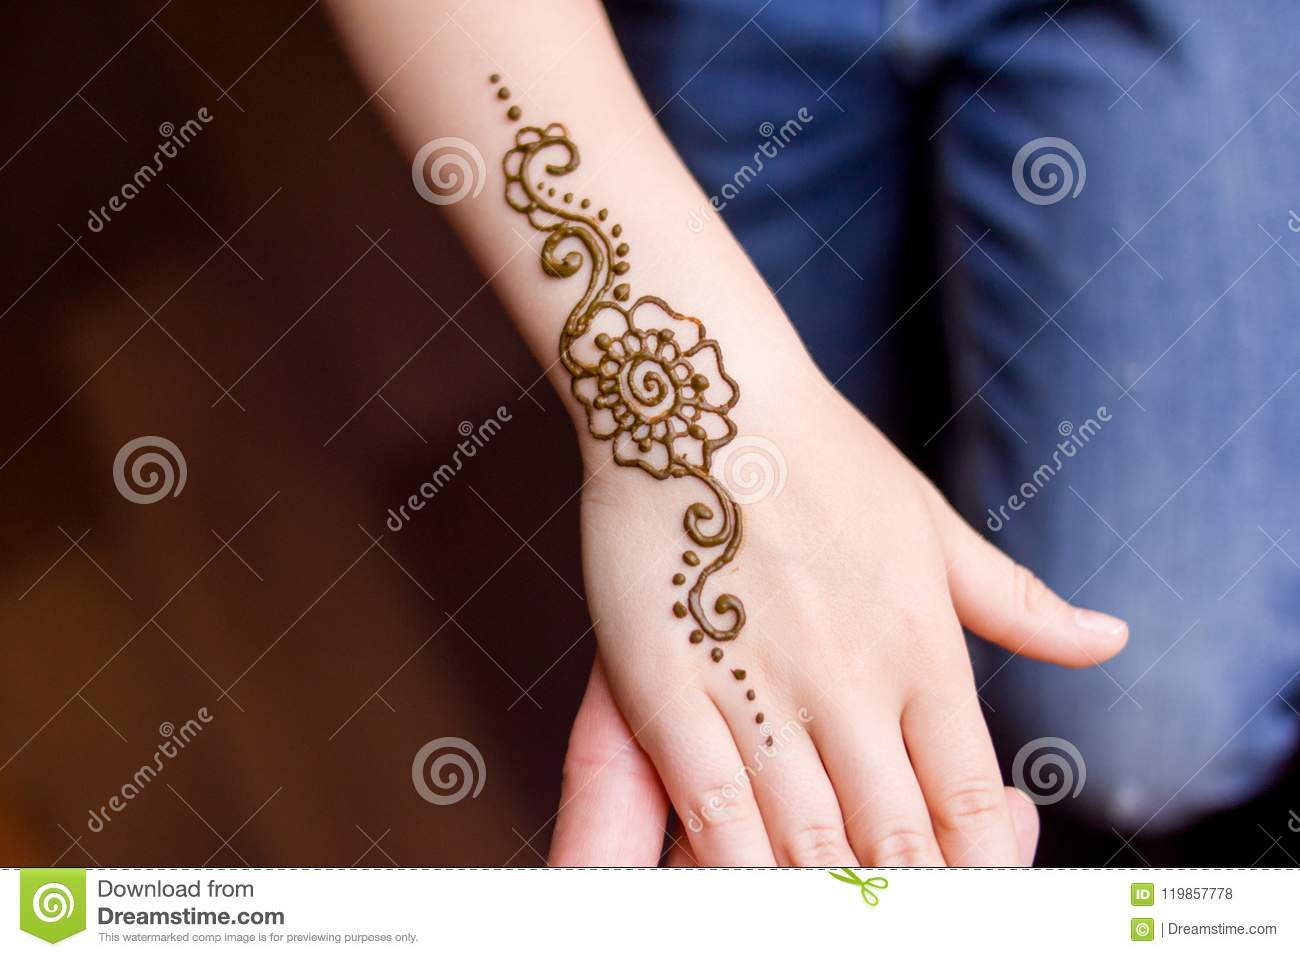 Hand Of Small Girl Being Decorated With Henna Mehendi Tattoo Close